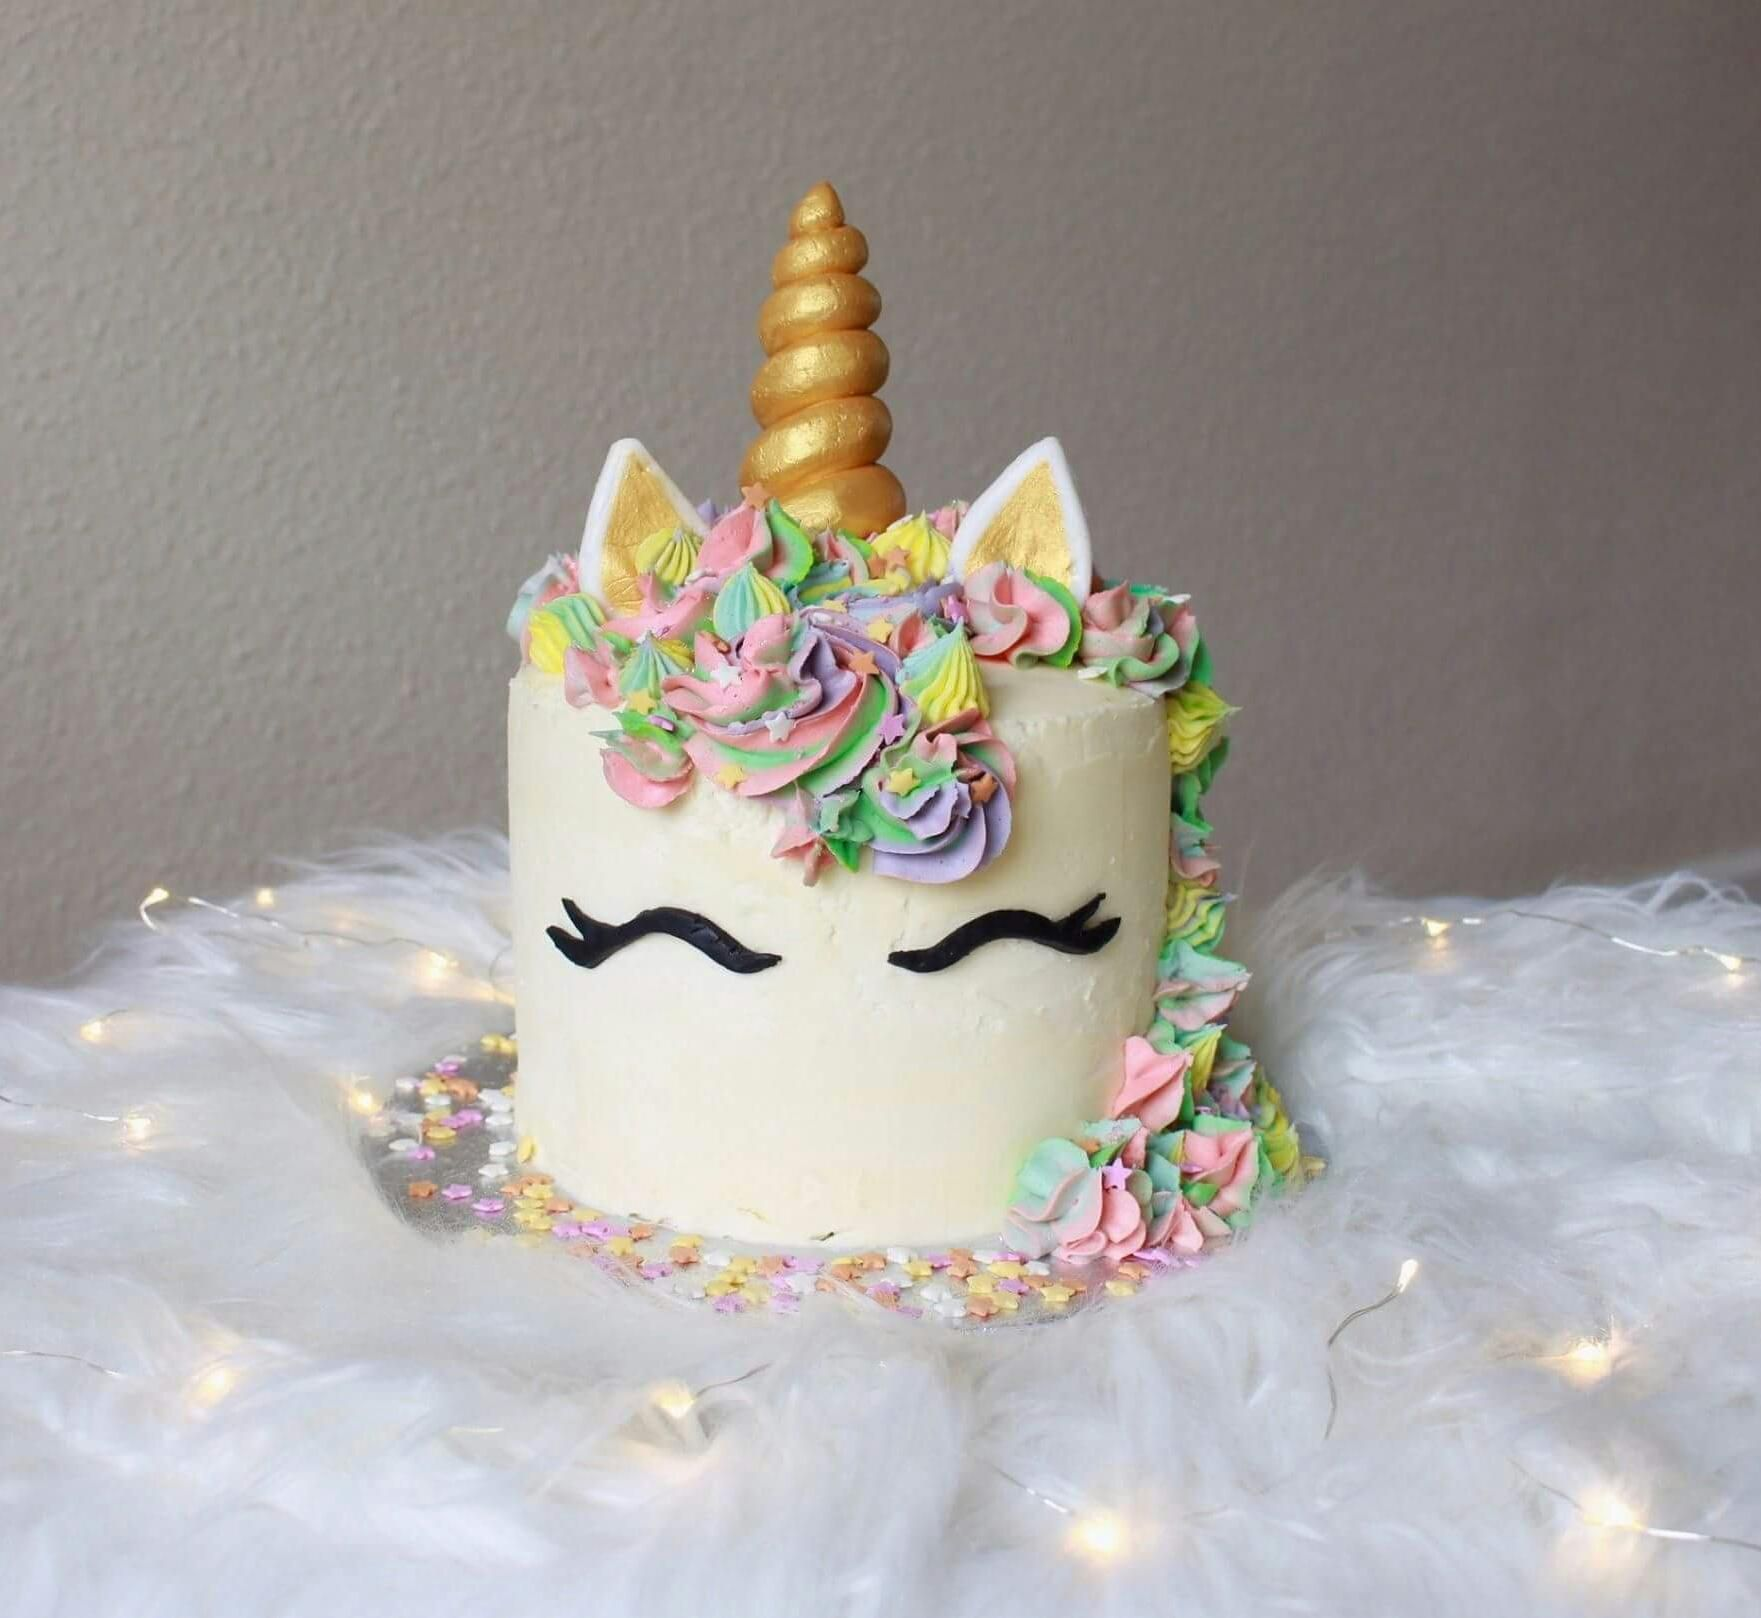 Homemade Unicorn Birthday Cake